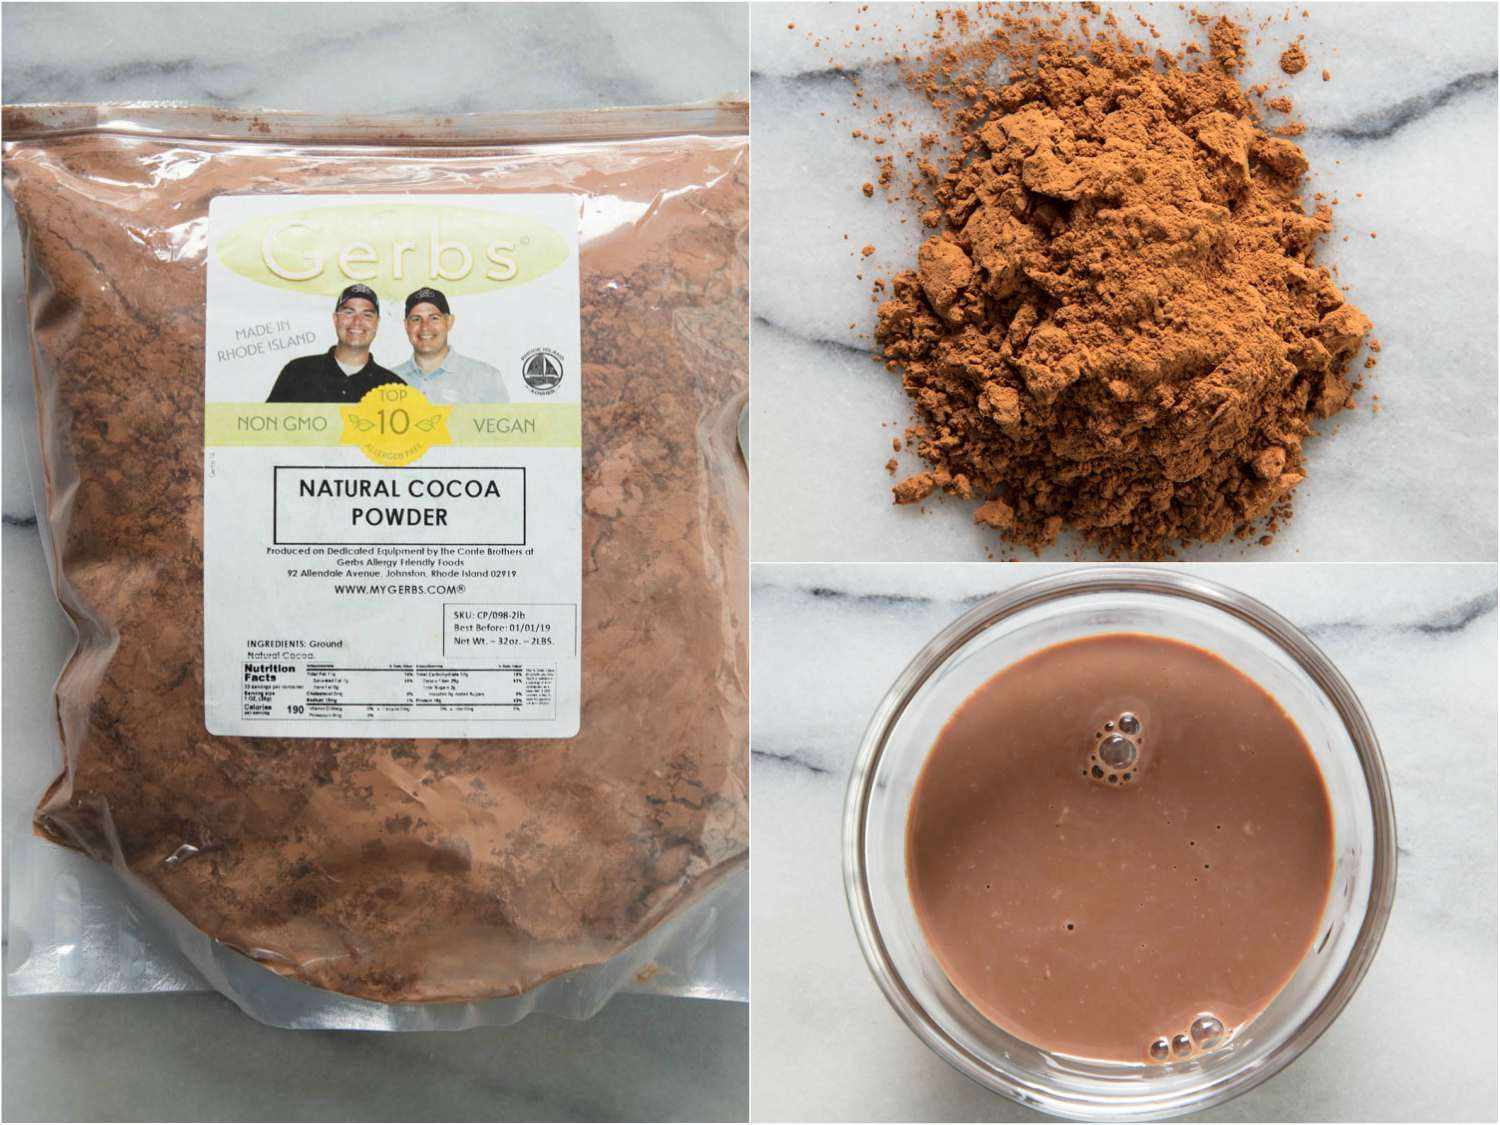 Collage of Gerbs cocoa powder, by itself, in hot cocoa, and in the packaging